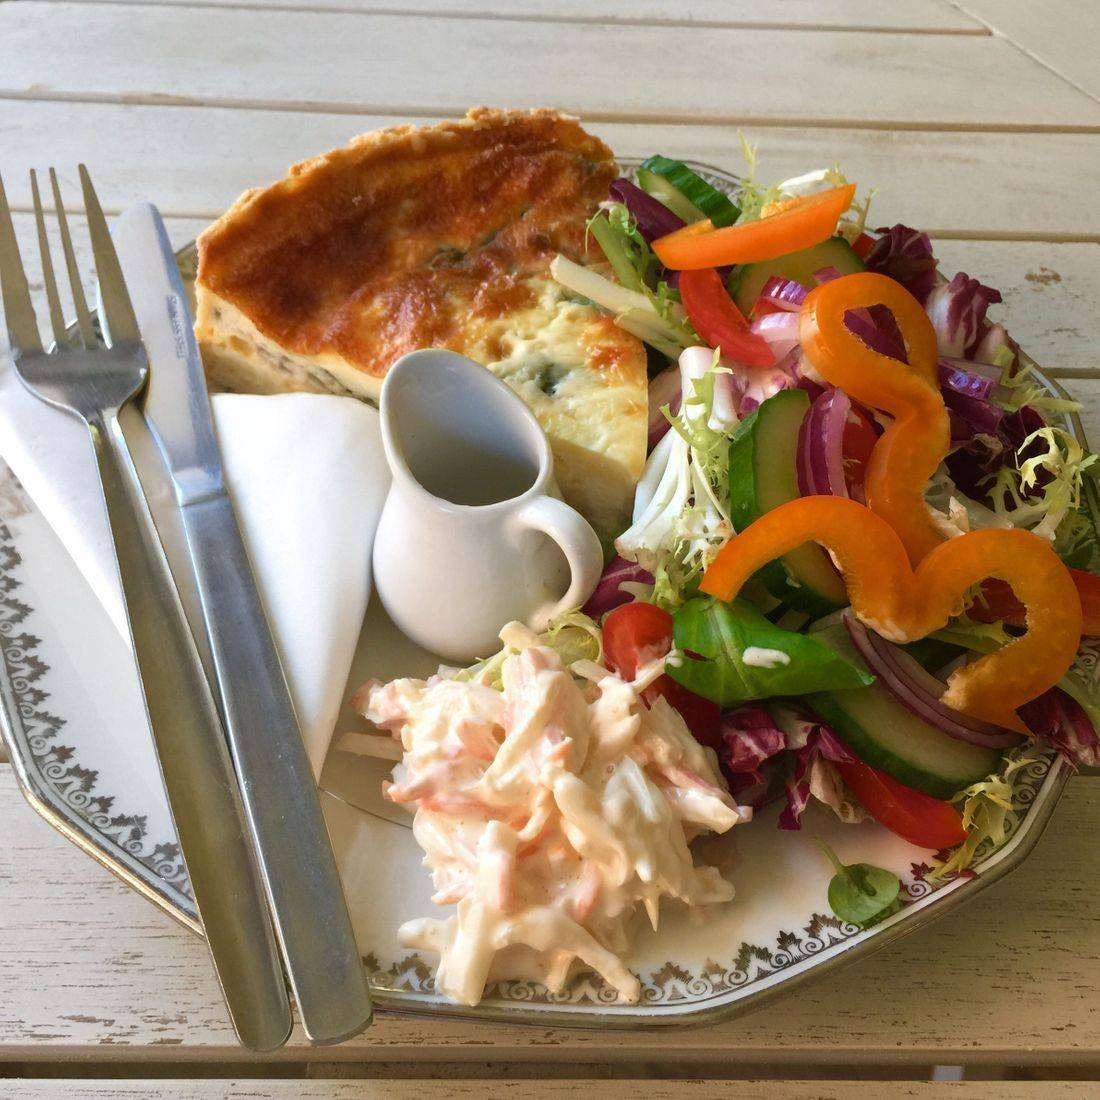 Homemade quiche served with a side salad